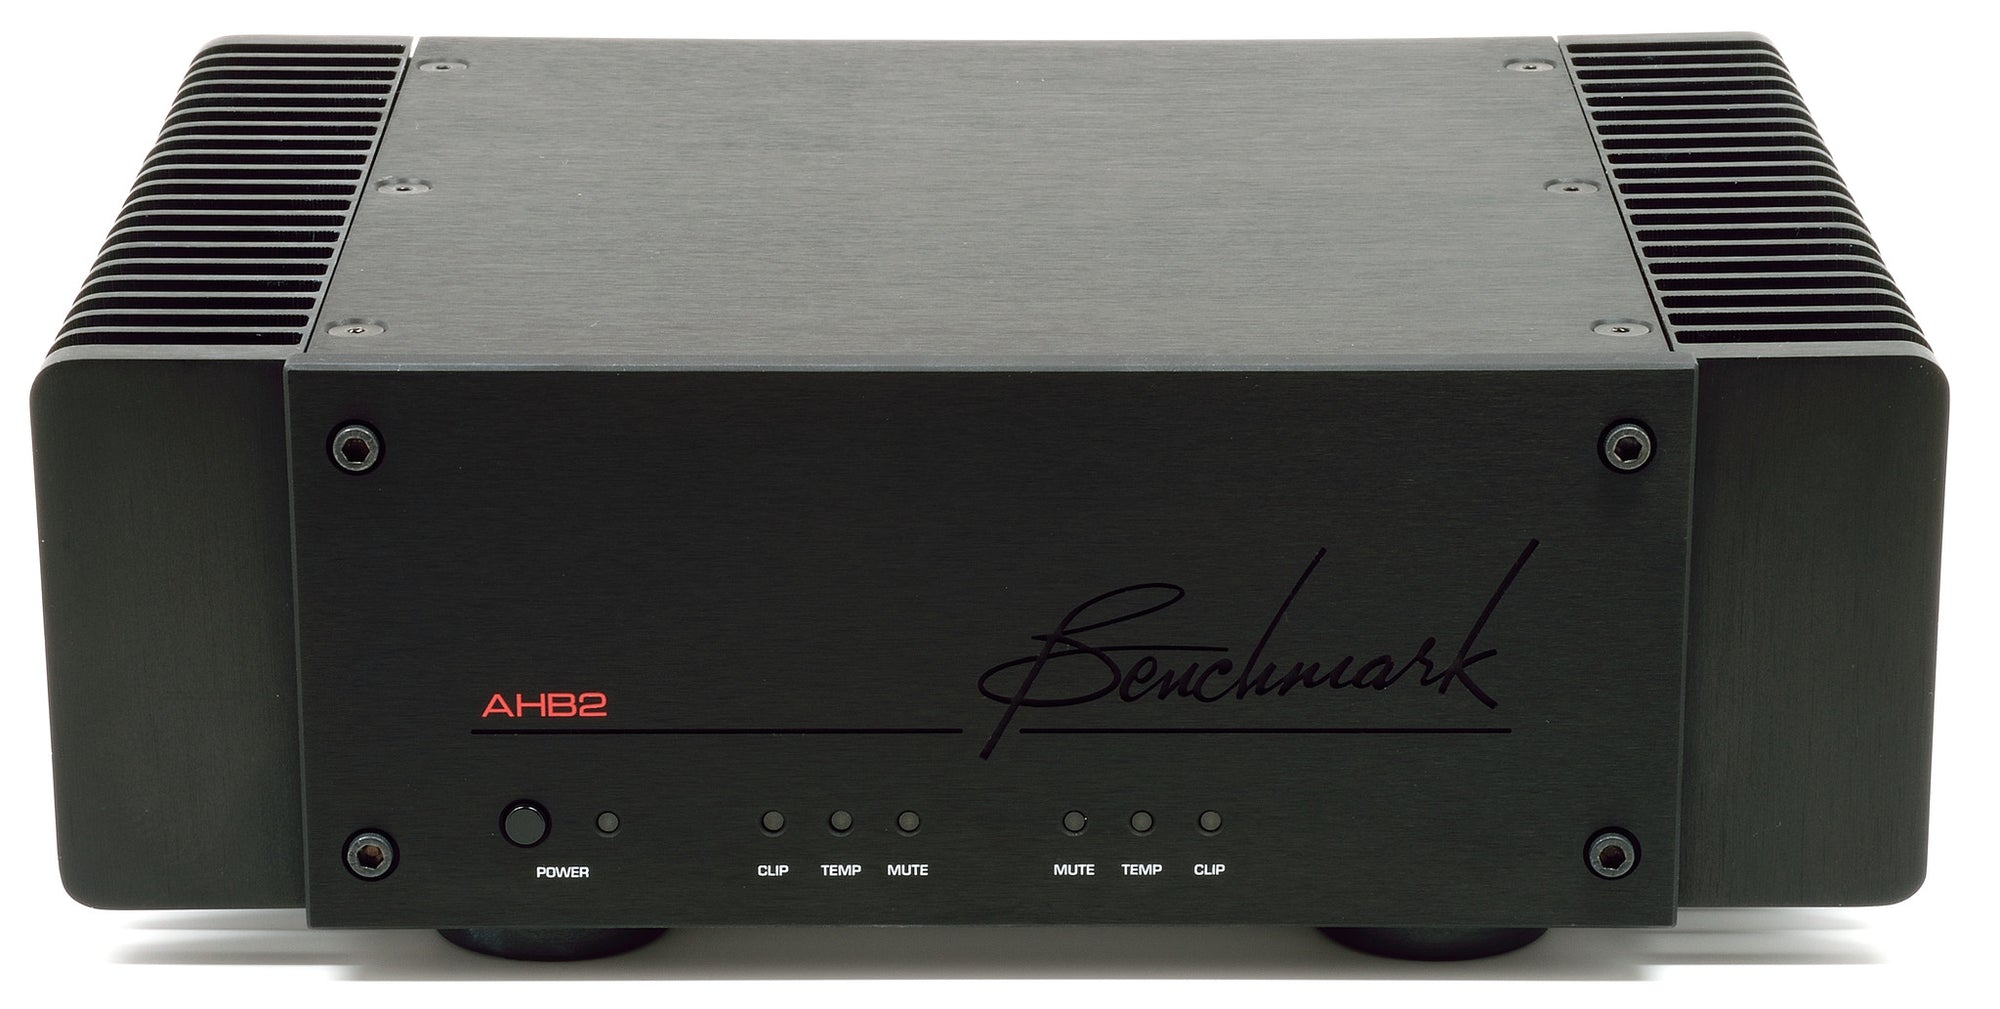 Benchmark Ahb2 Power Amplifier Media Systems 800w Audio Circuit The Ideal For Home